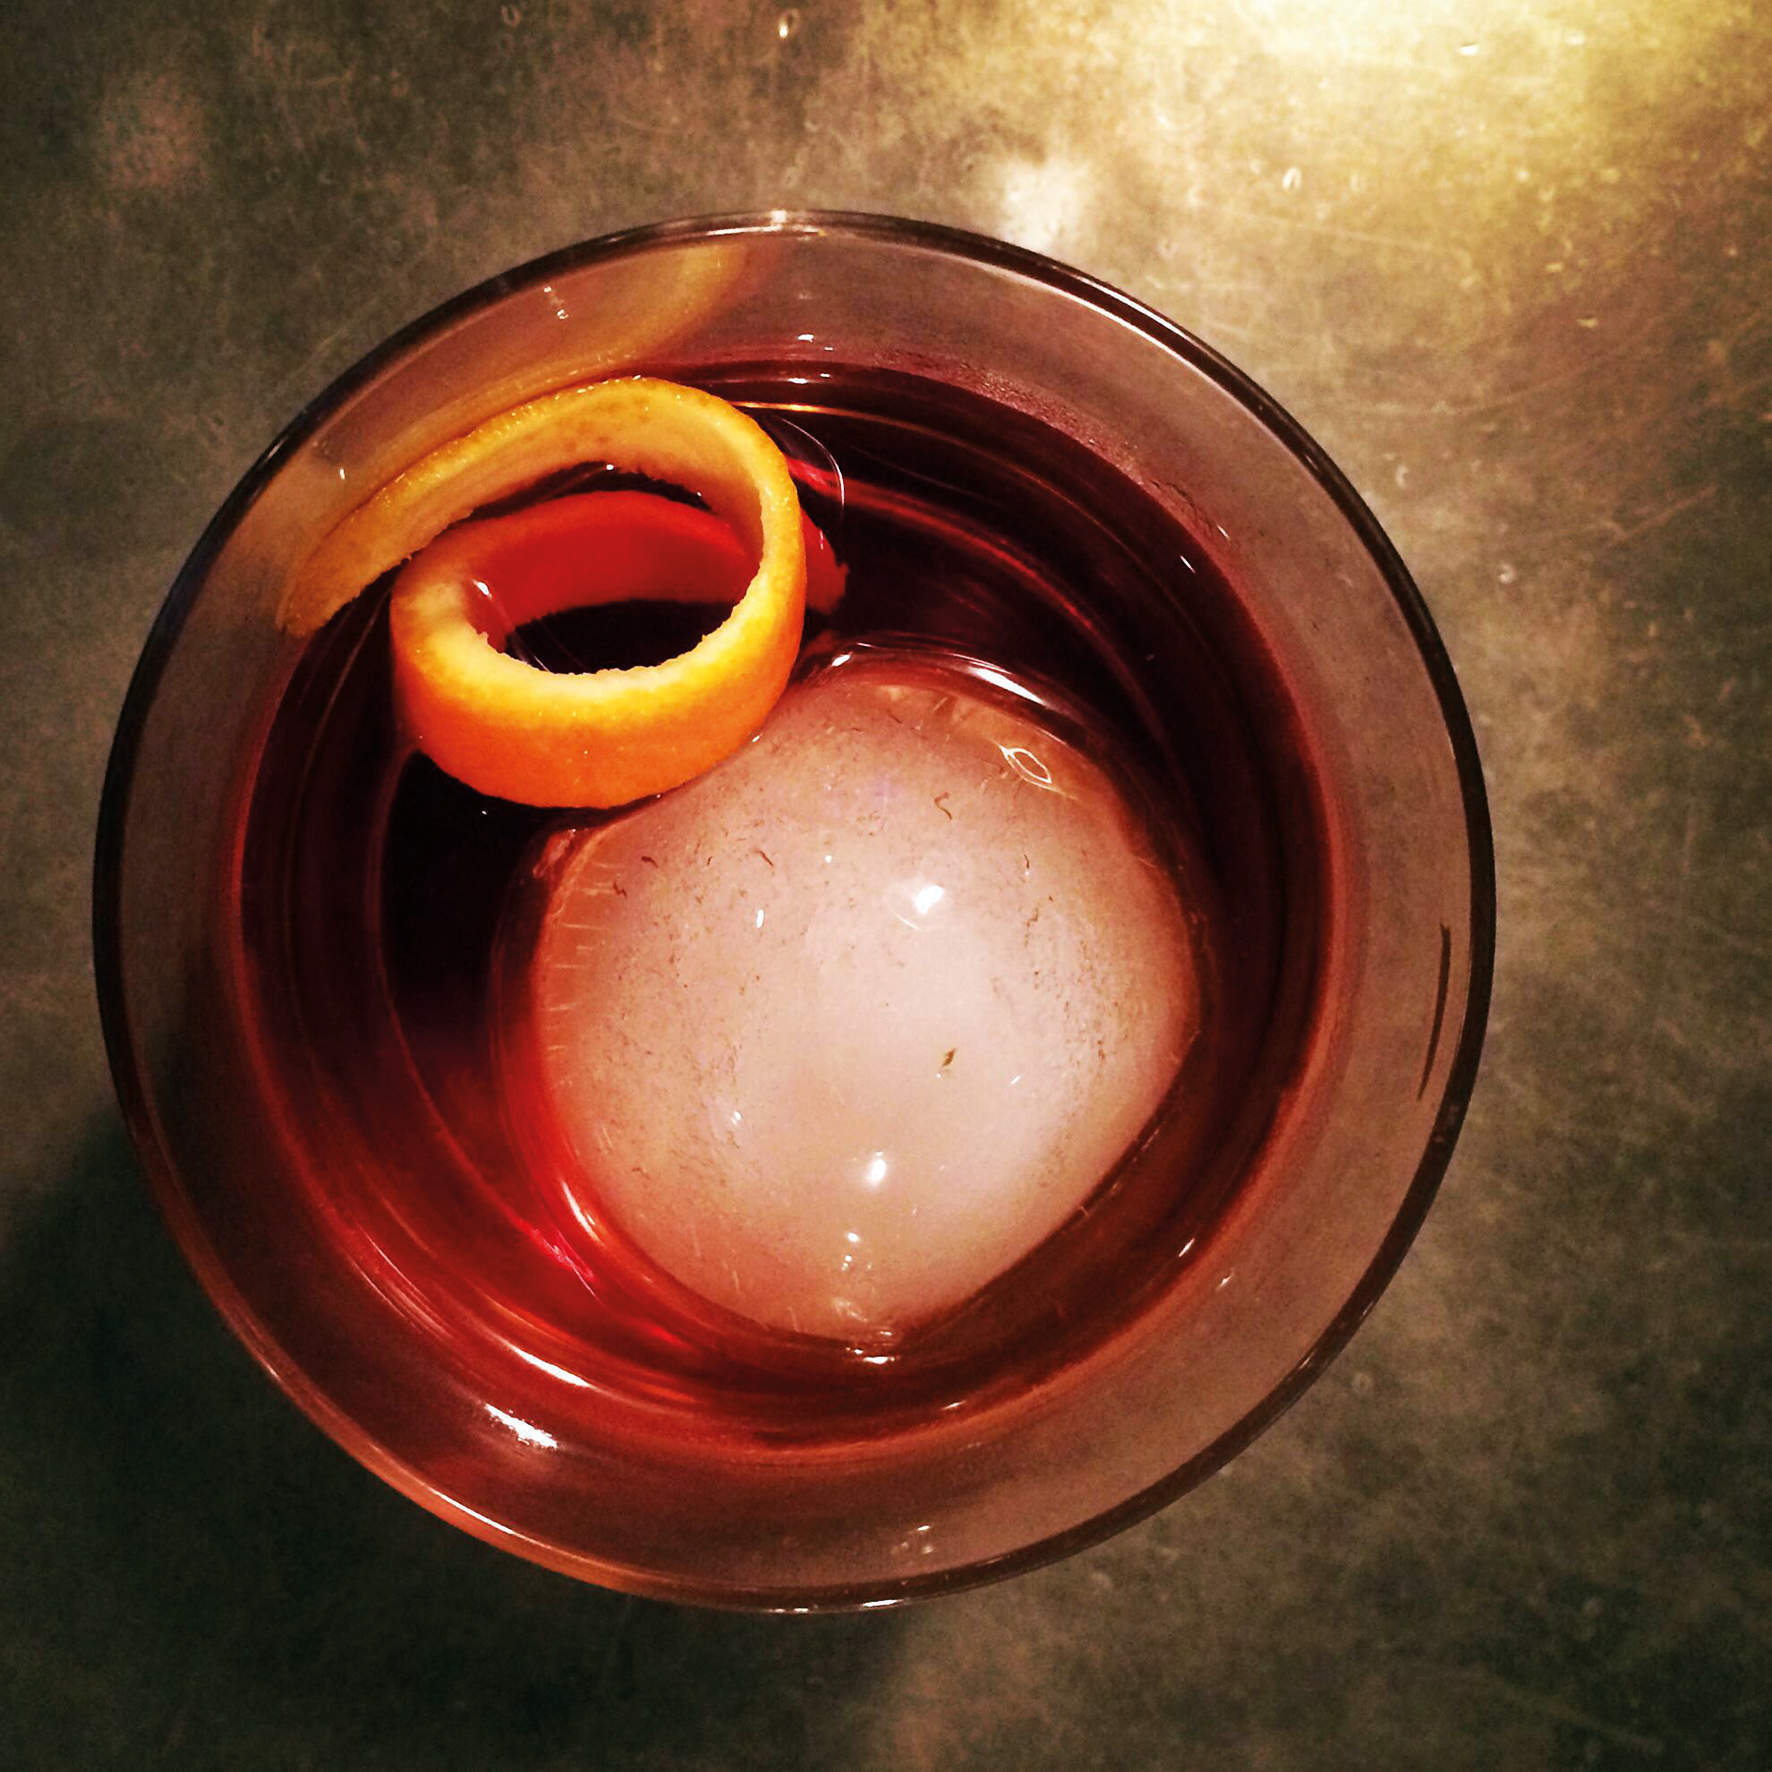 The Negroni fools no one – it's easy to make and contains nothing but booze